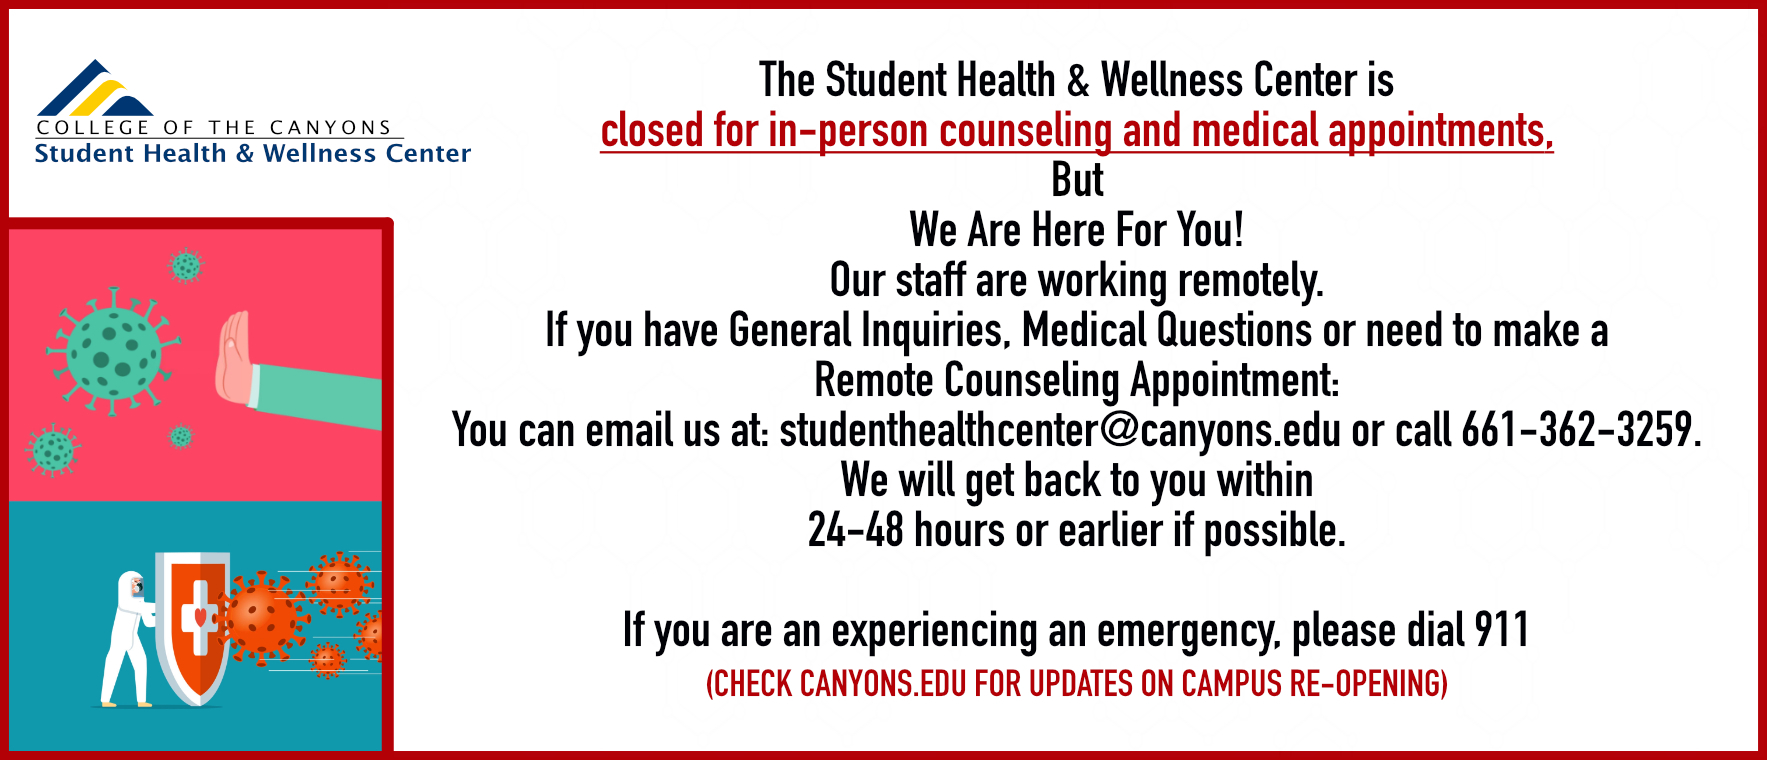 Health & Wellness Center With Regard To When Does Spring Semester Start For Laverne University In College Of The Canyons